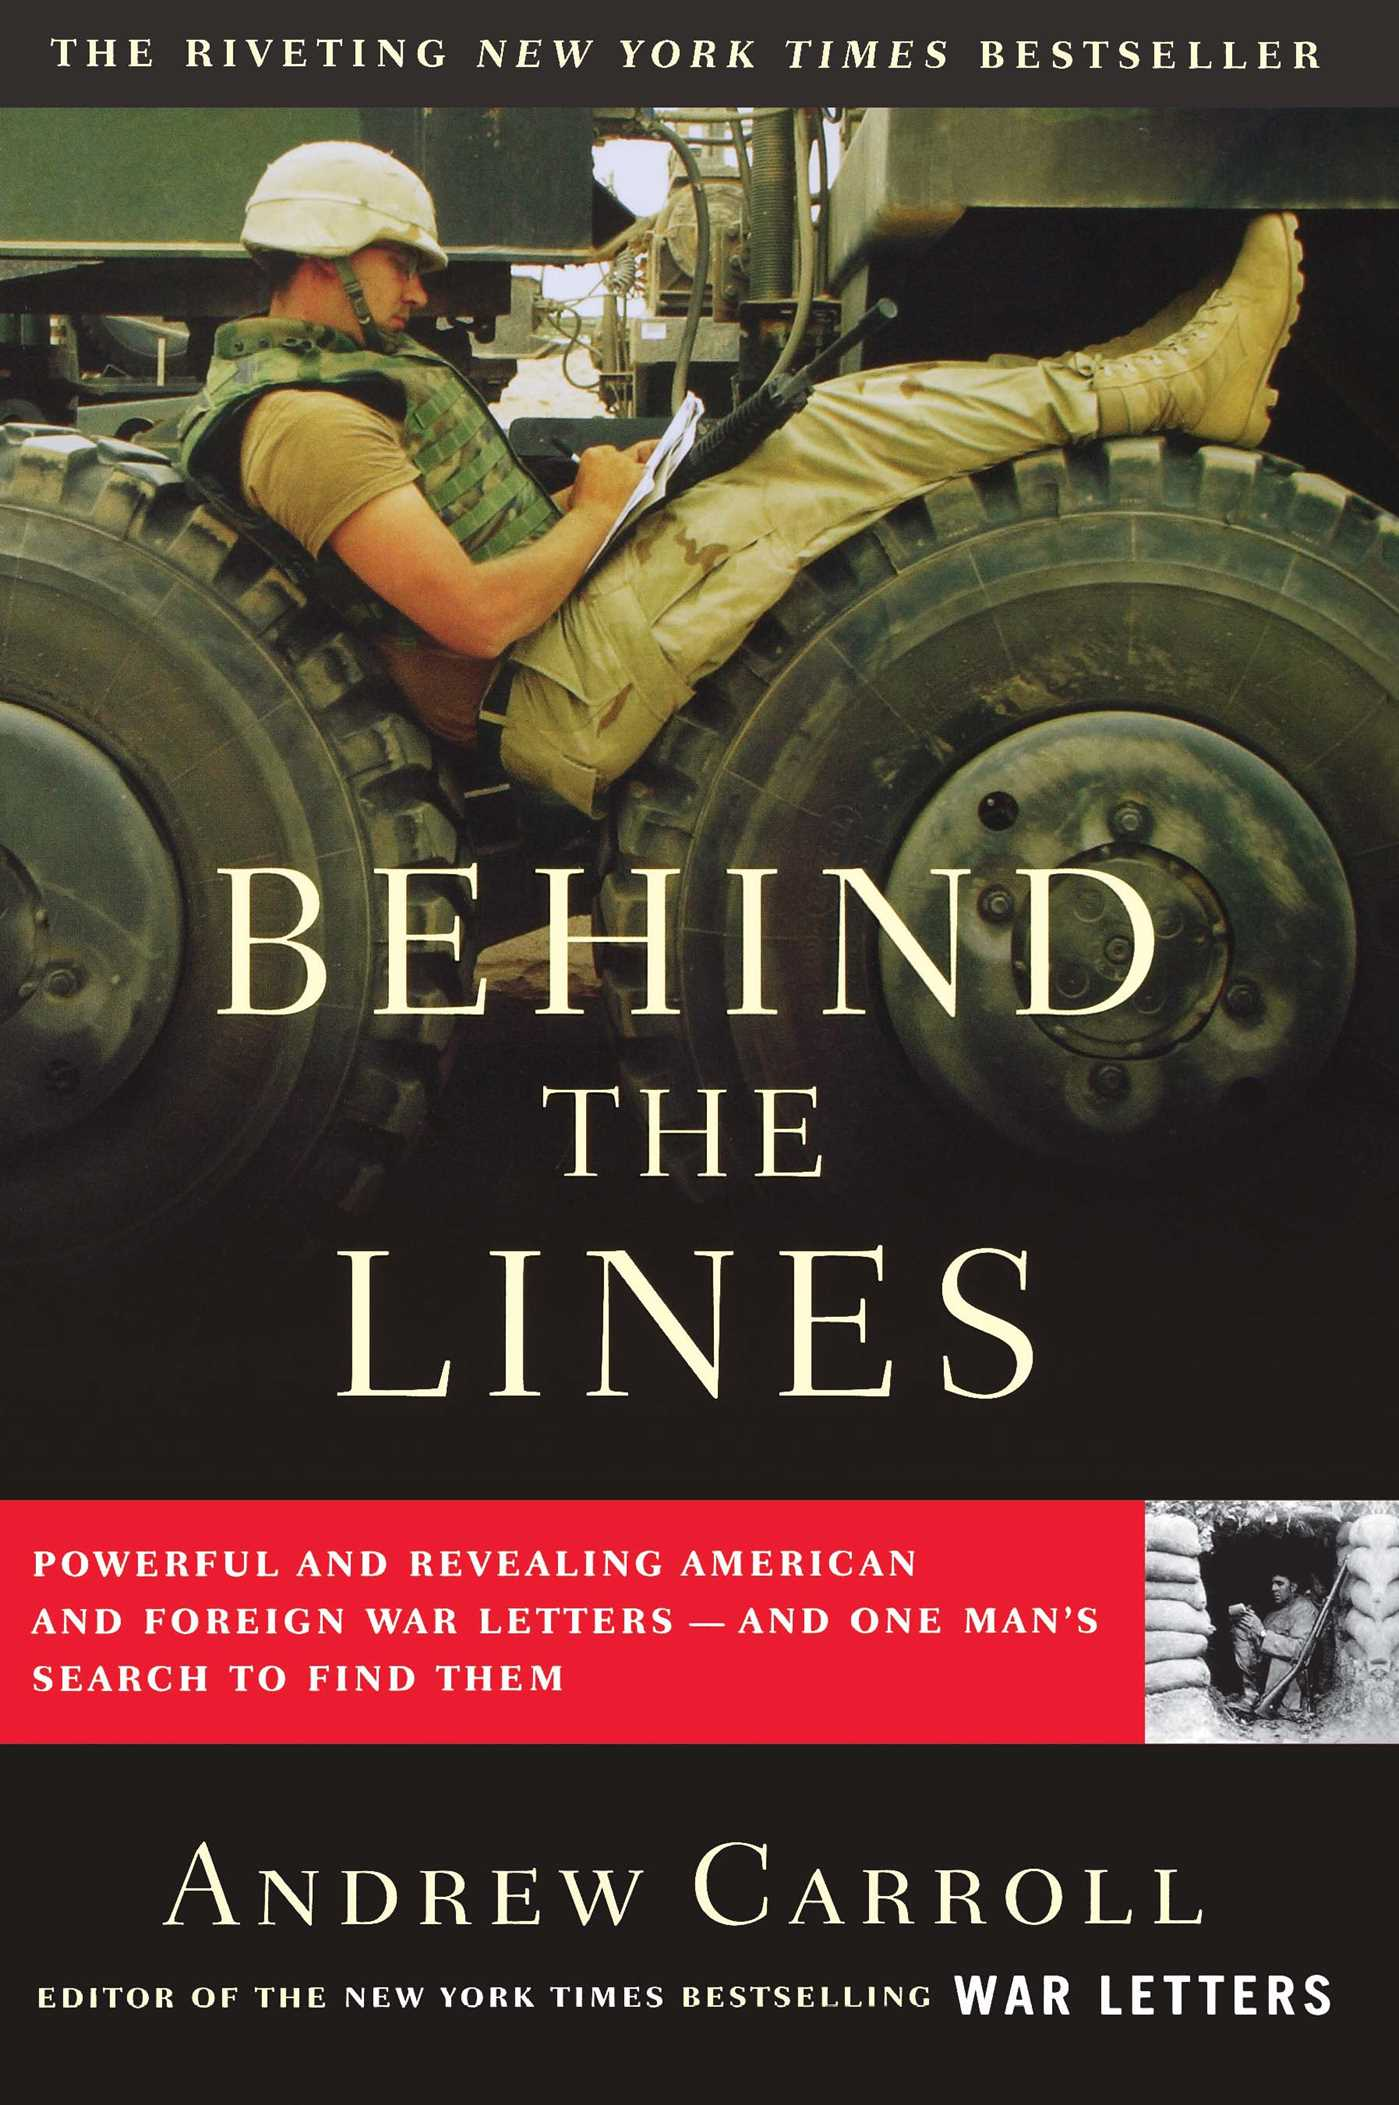 Behind-the-lines-9780743284585_hr